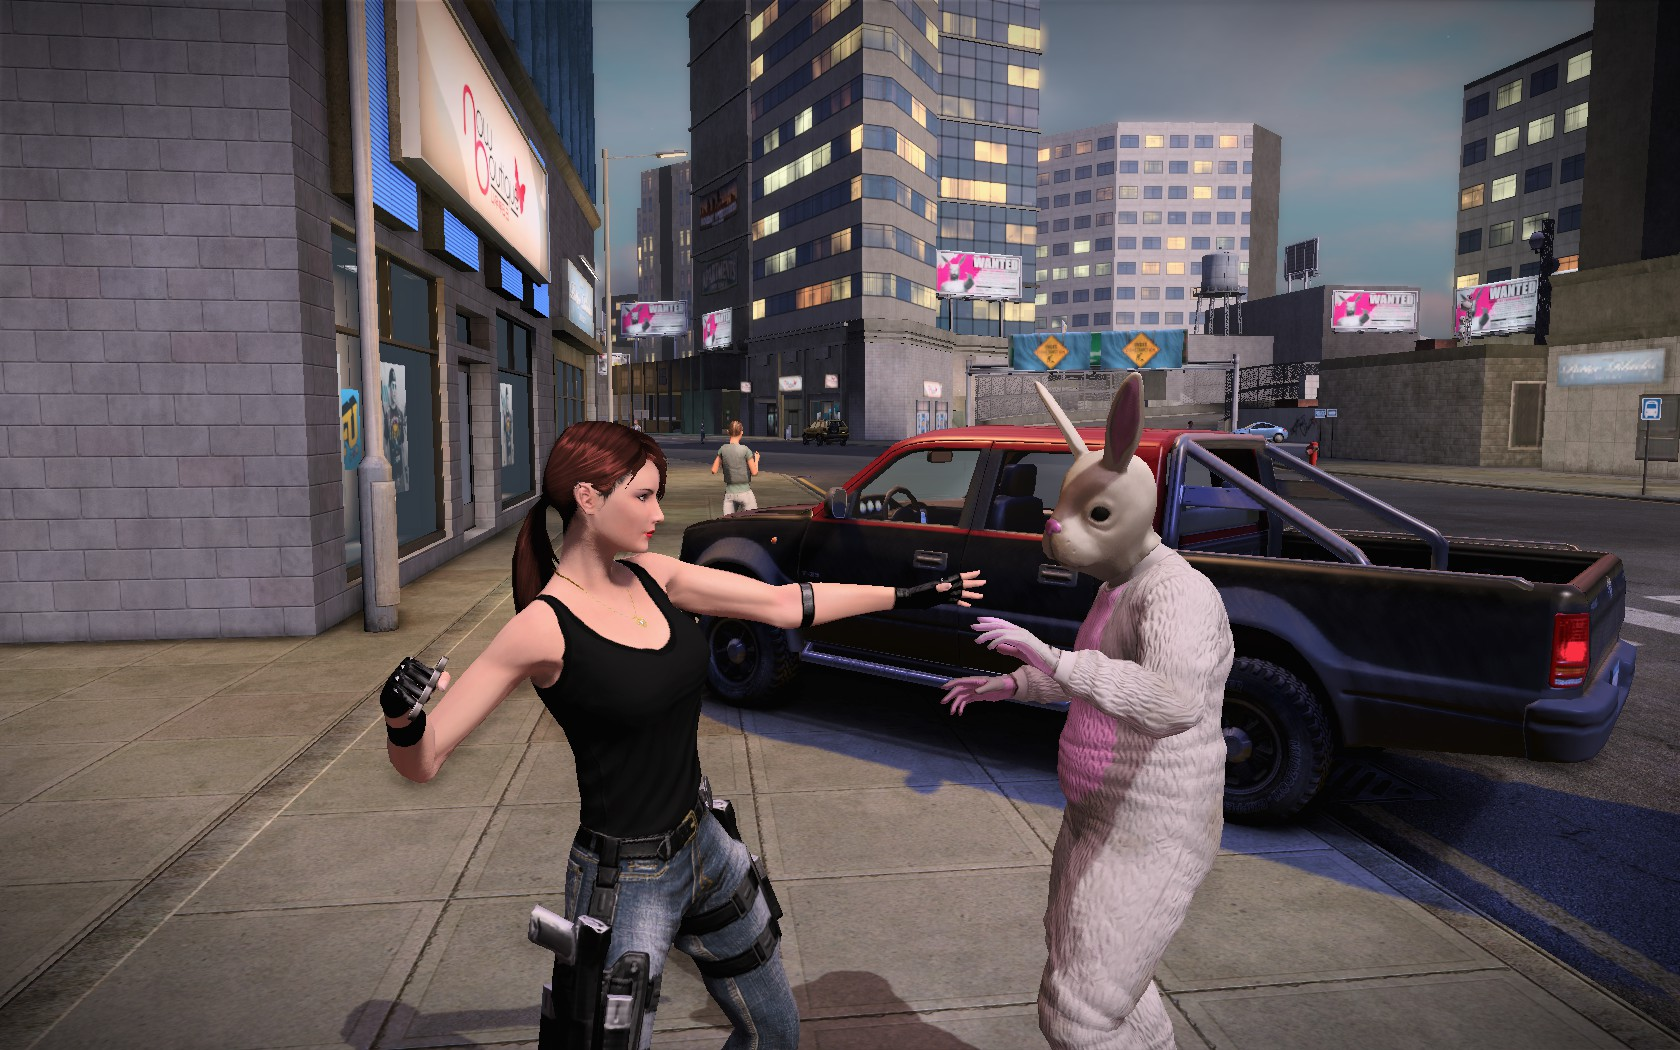 Apb reloaded online players in dating